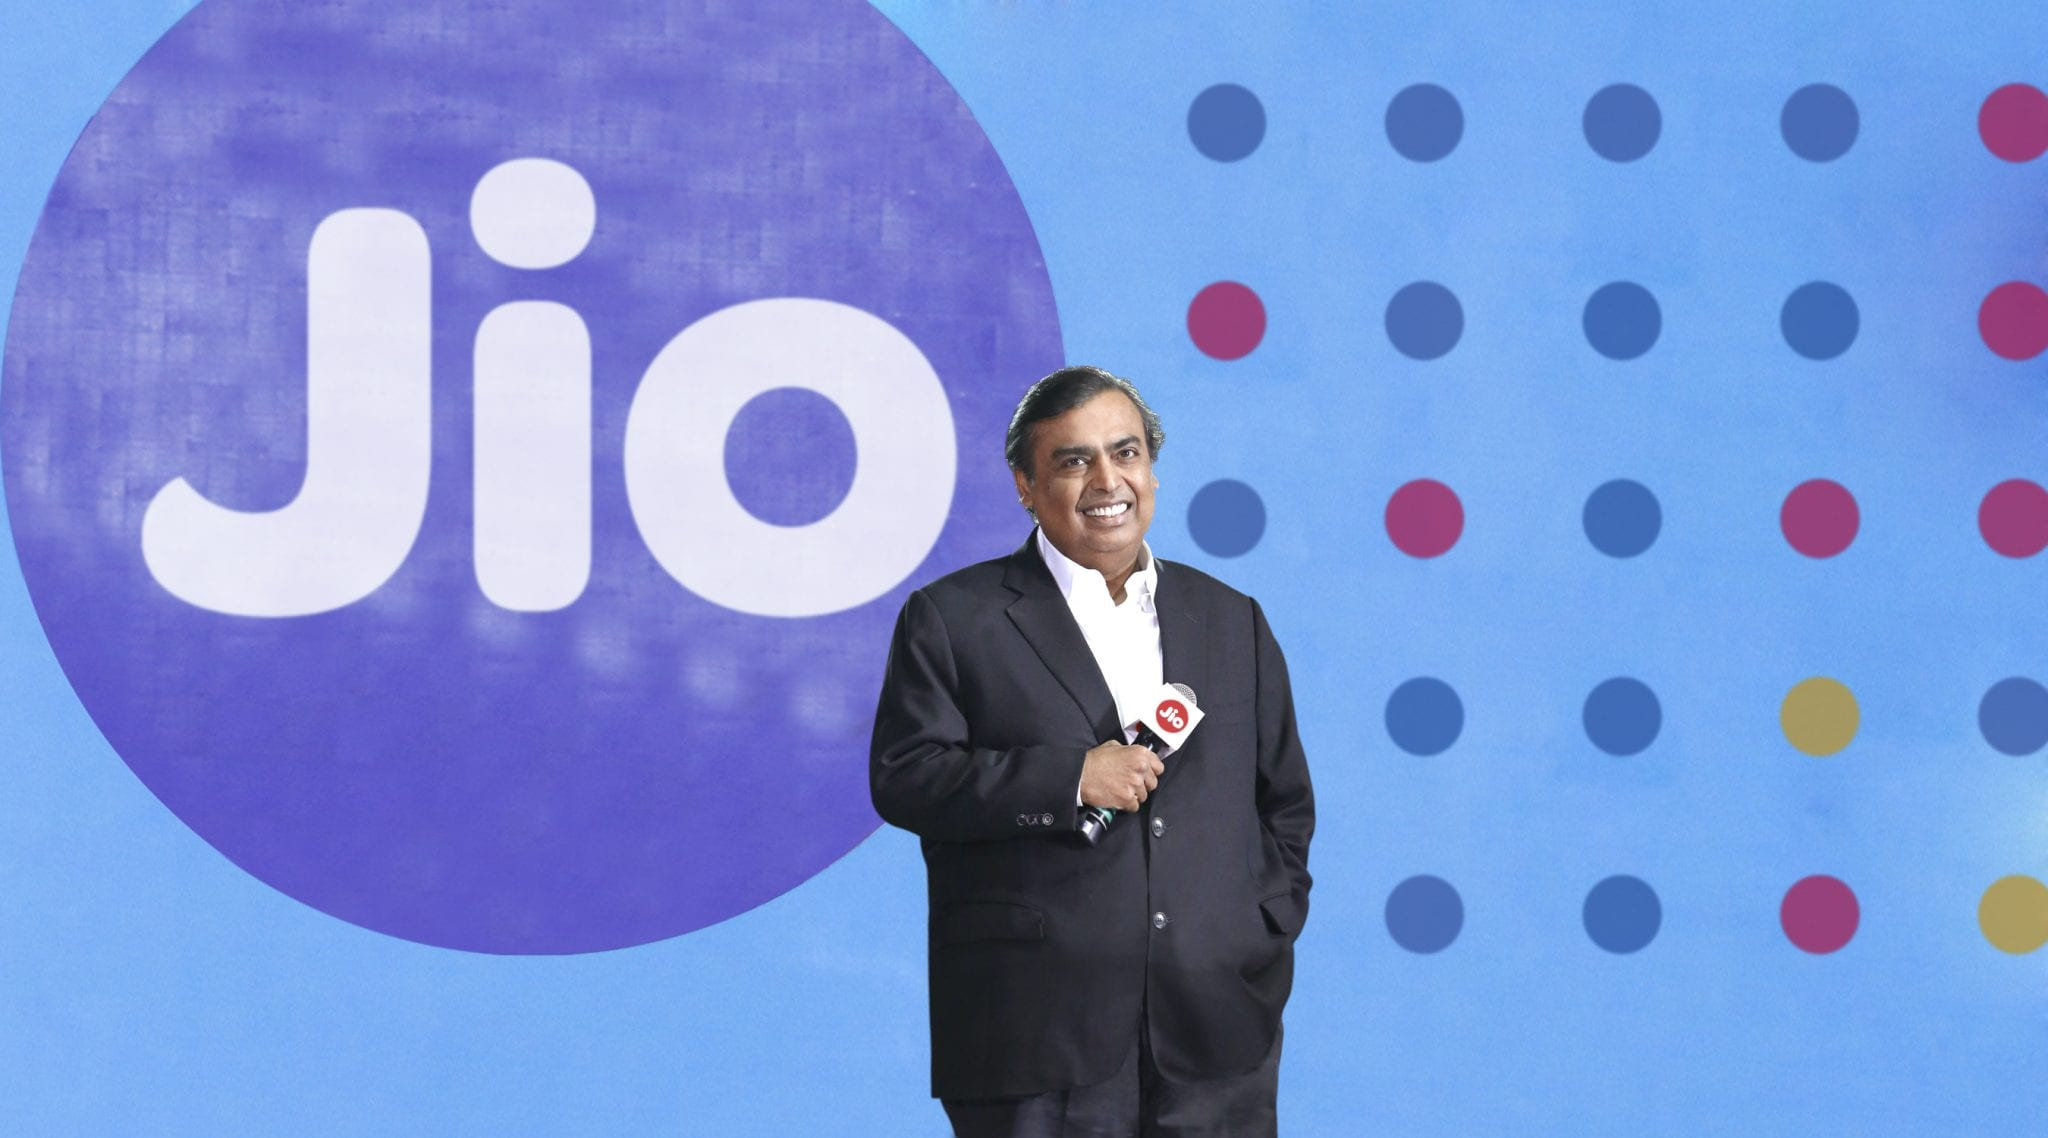 mukesh-ambani-the-ceo-of-reliance-industries-announced-that-reliance-jio-will-provide-fastest-internet-service-in-india